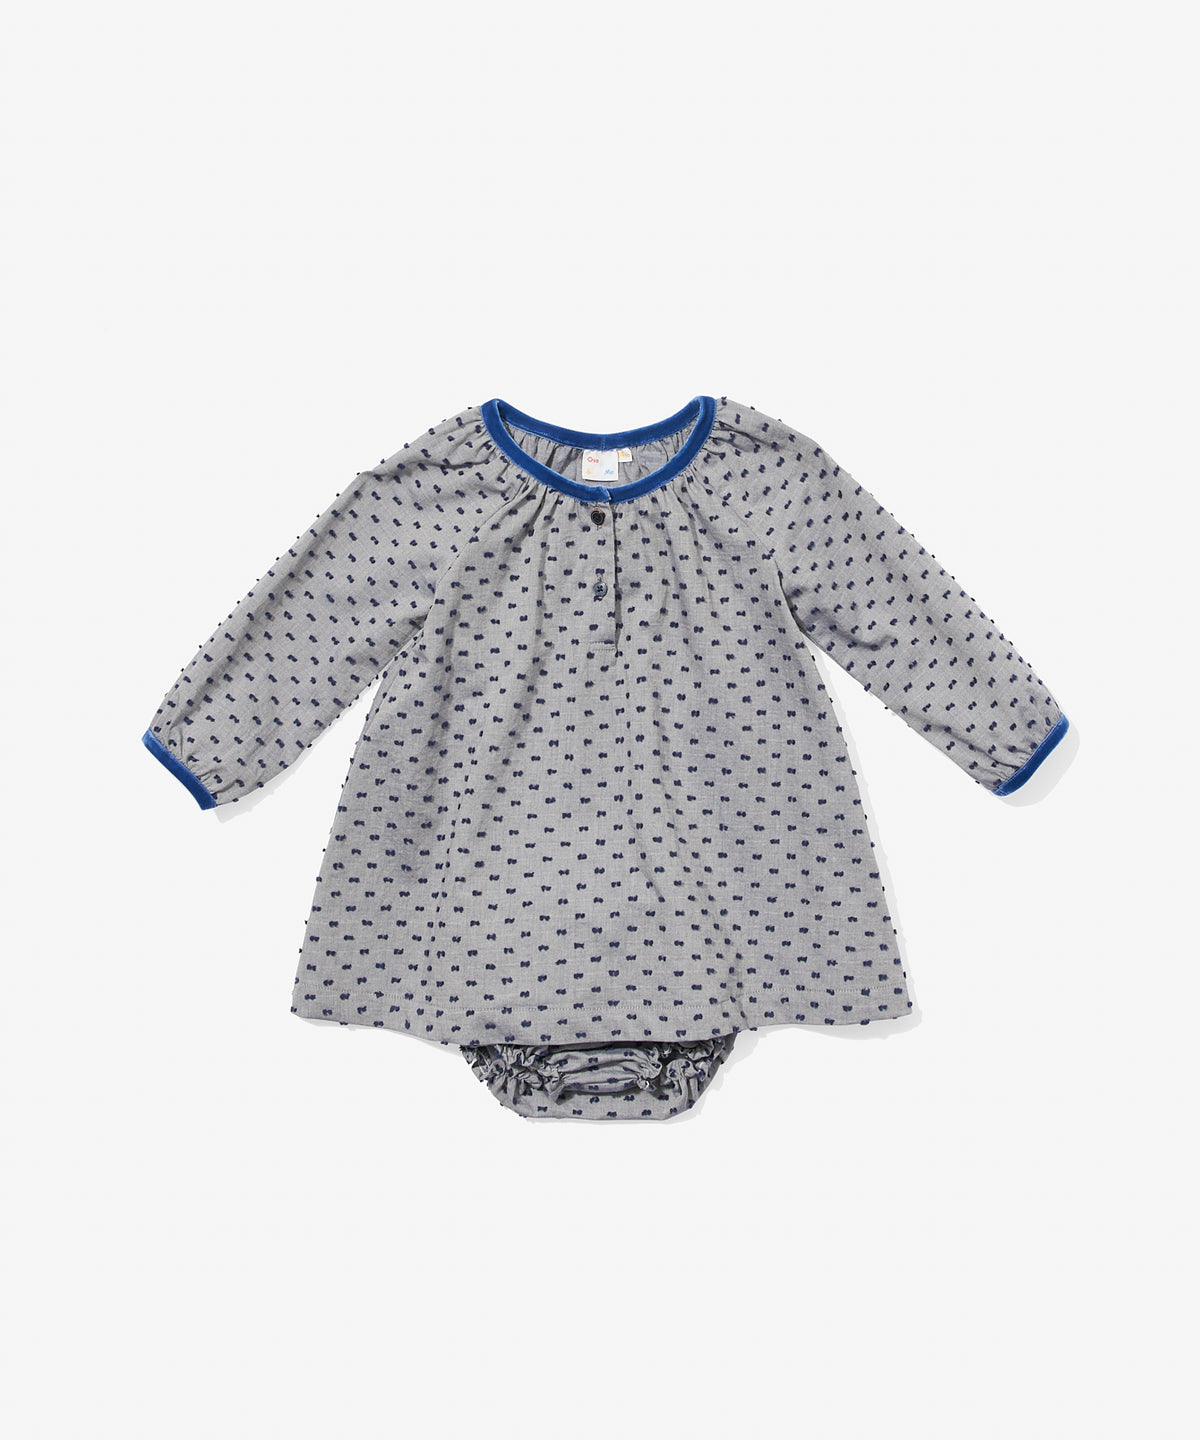 Elizabeth Baby Dress, Navy Swiss Dot